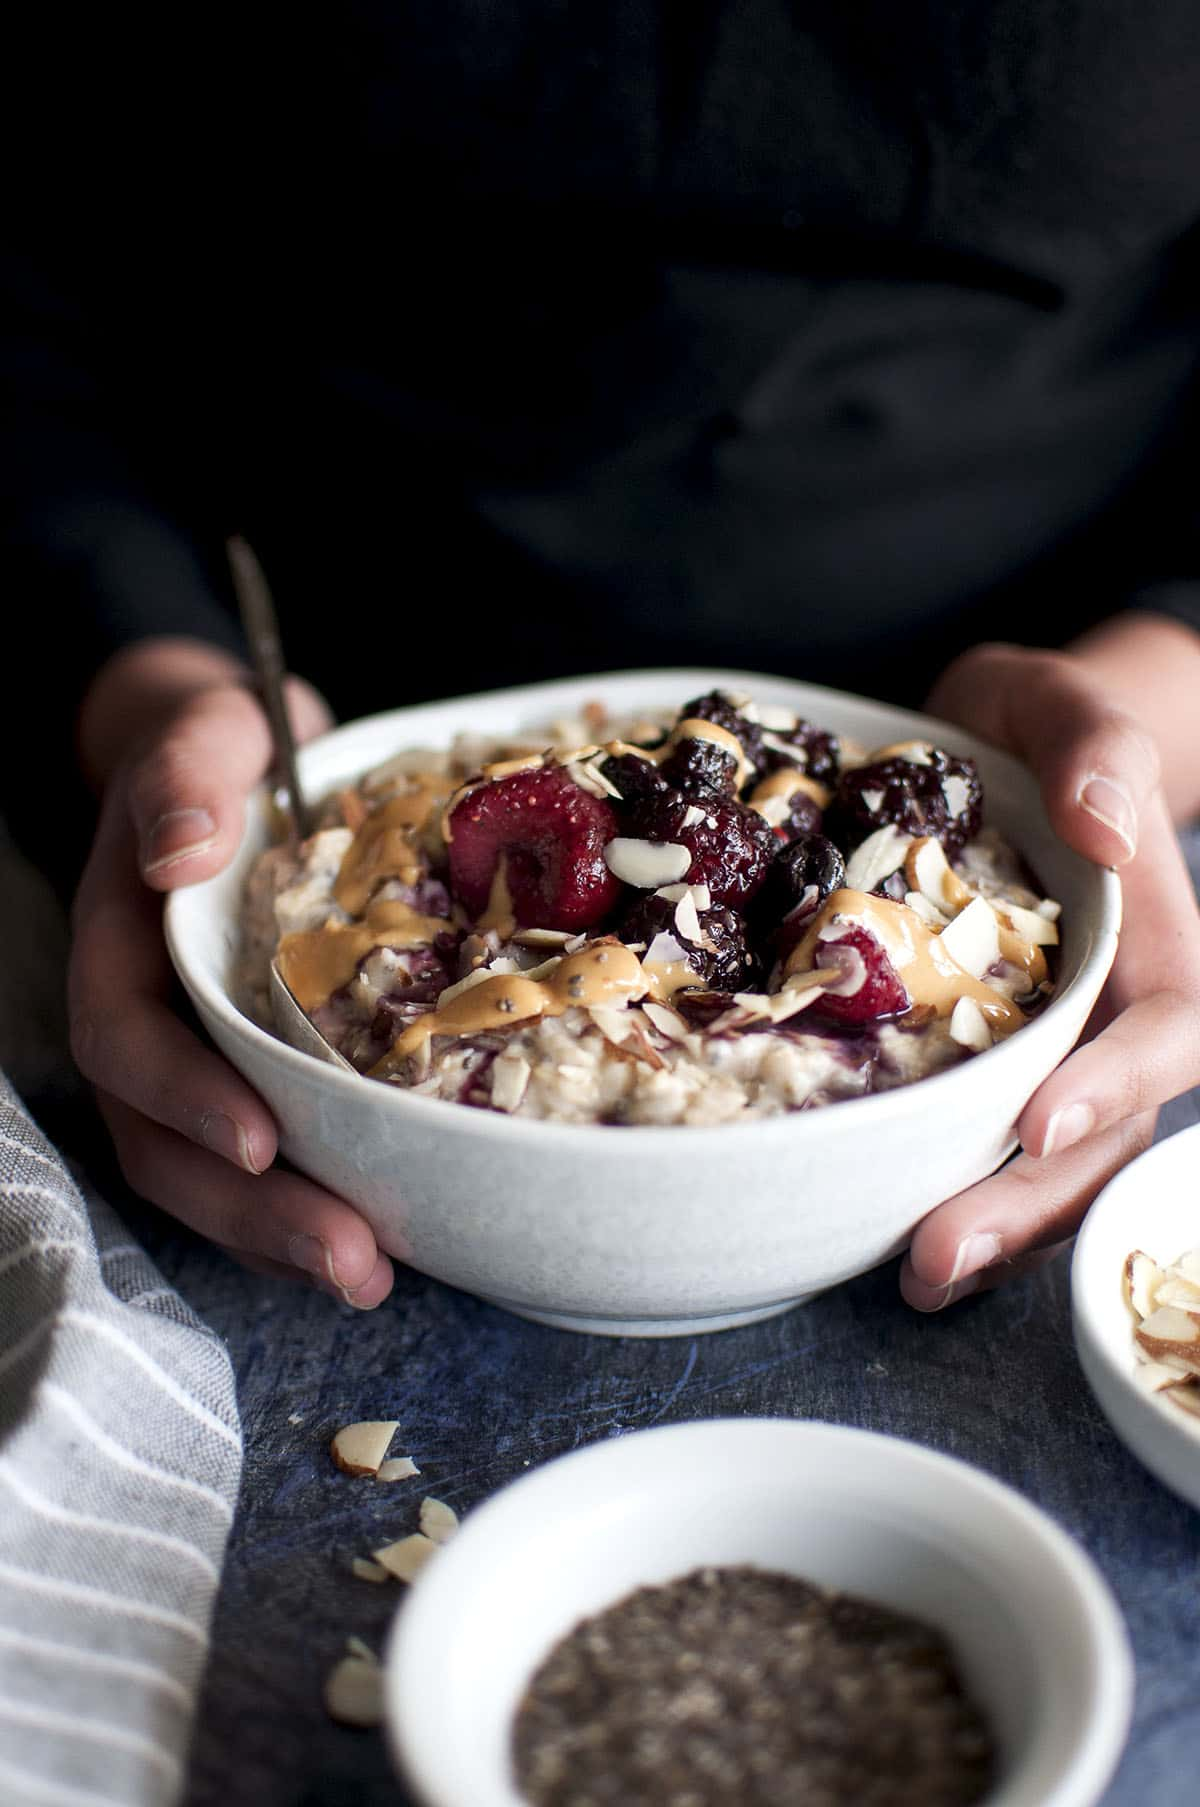 Hand holding a bowl of oatmeal porridge topped with berries